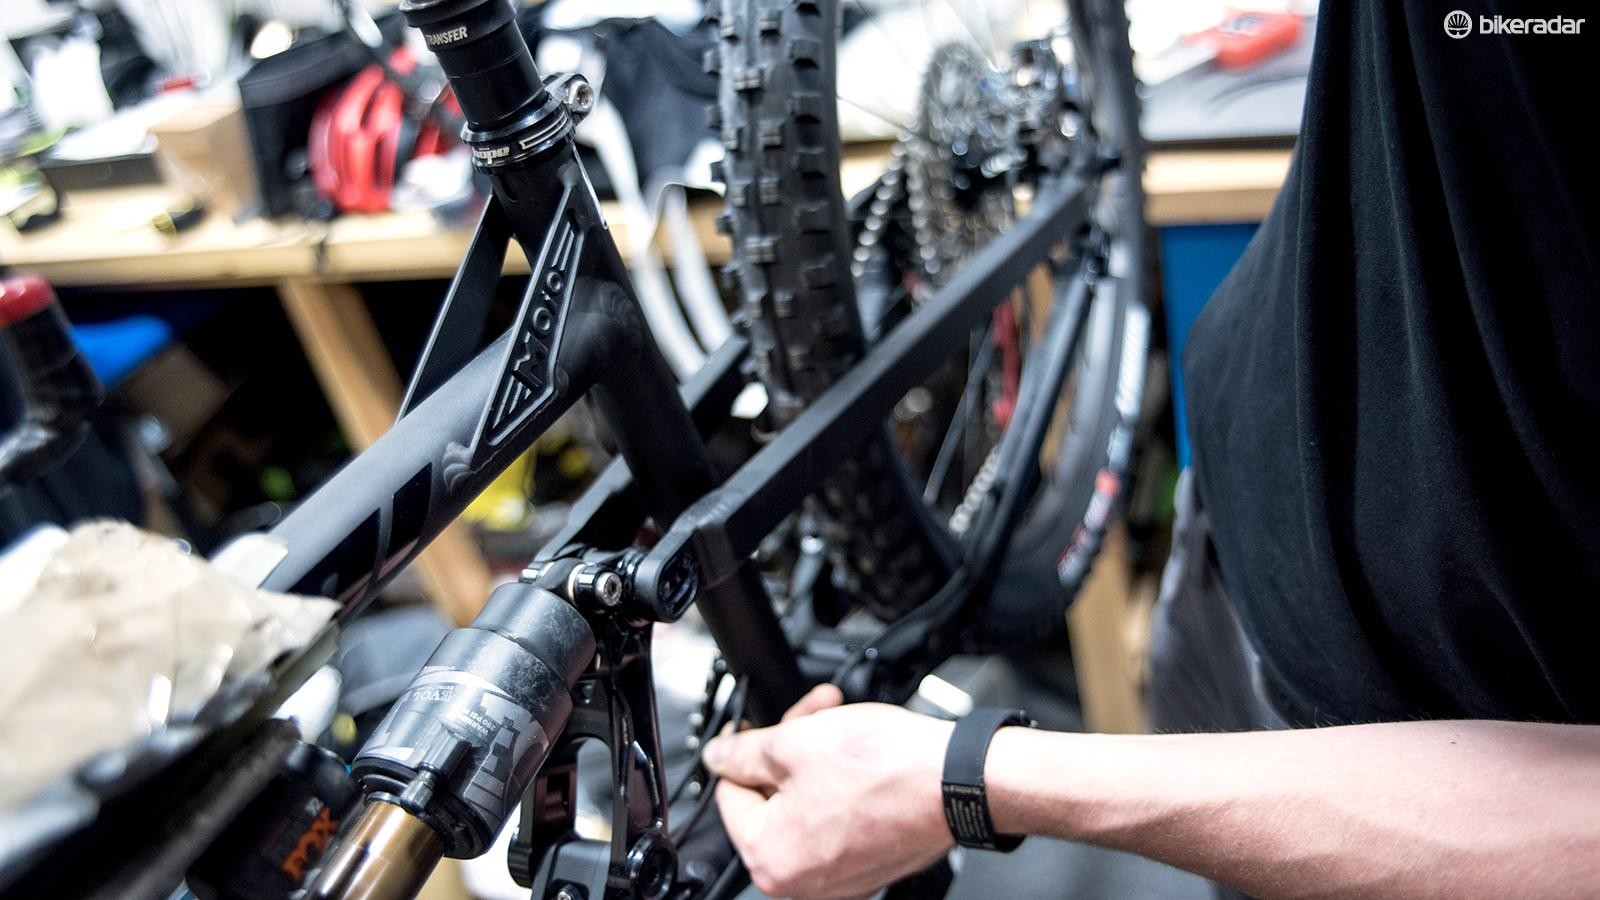 Retighten the seat clamp and any loosened cable fasteners